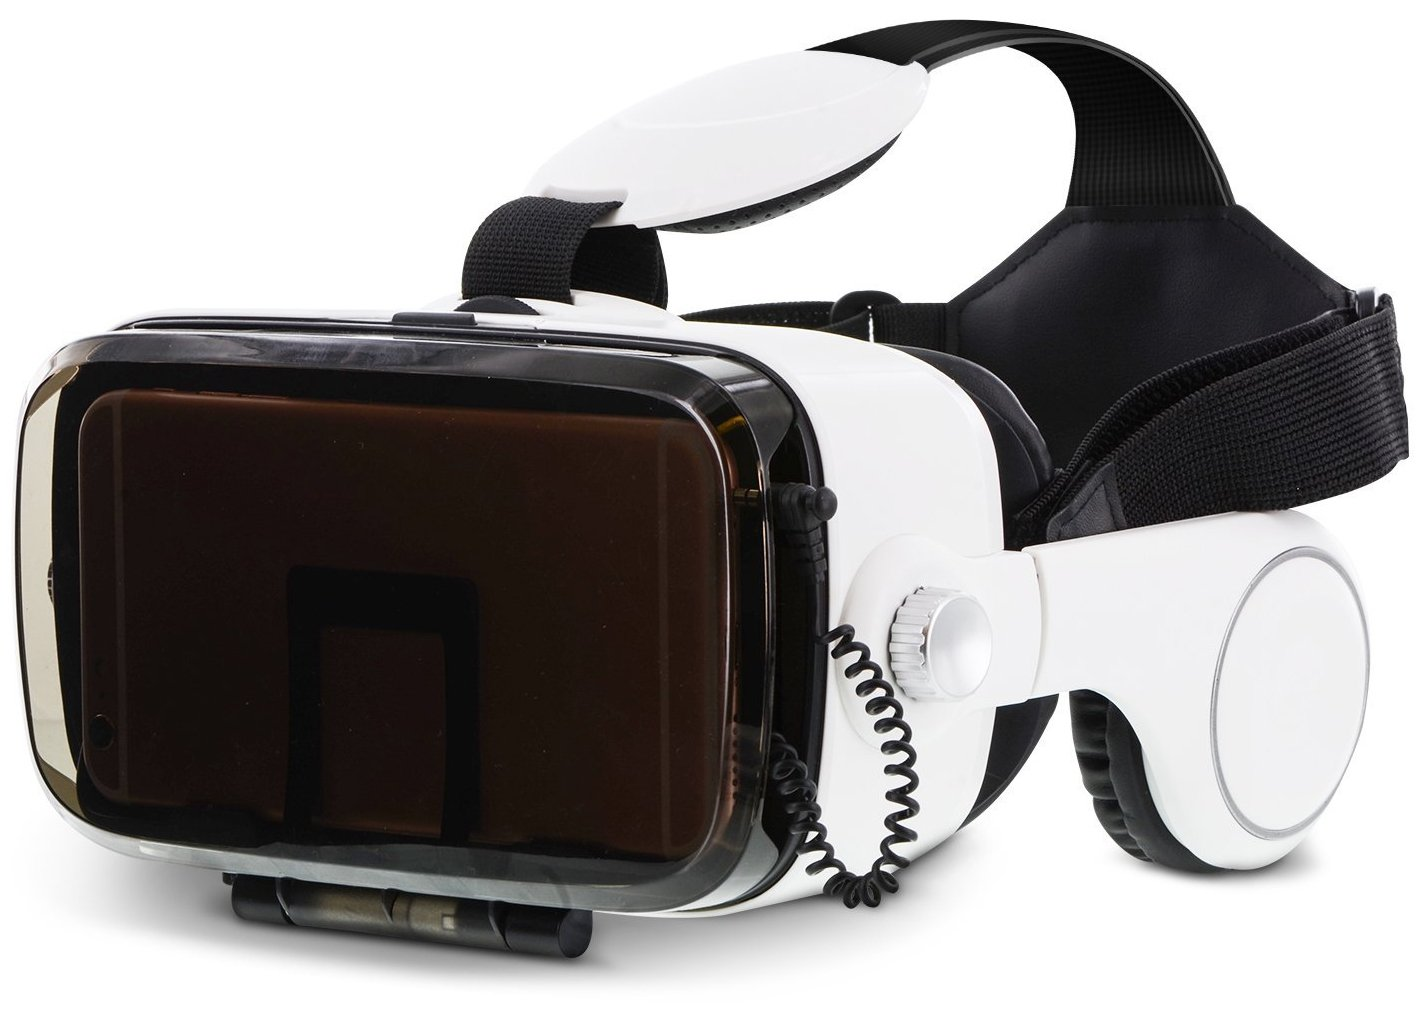 Aduro SoundVision Virtual Reality Glasses for 4.7 to 6 in Universal Smartphones w/Stereo Headset for 3D Pictures w/360 Panoramic Views & 3.5 mm Audio Jack